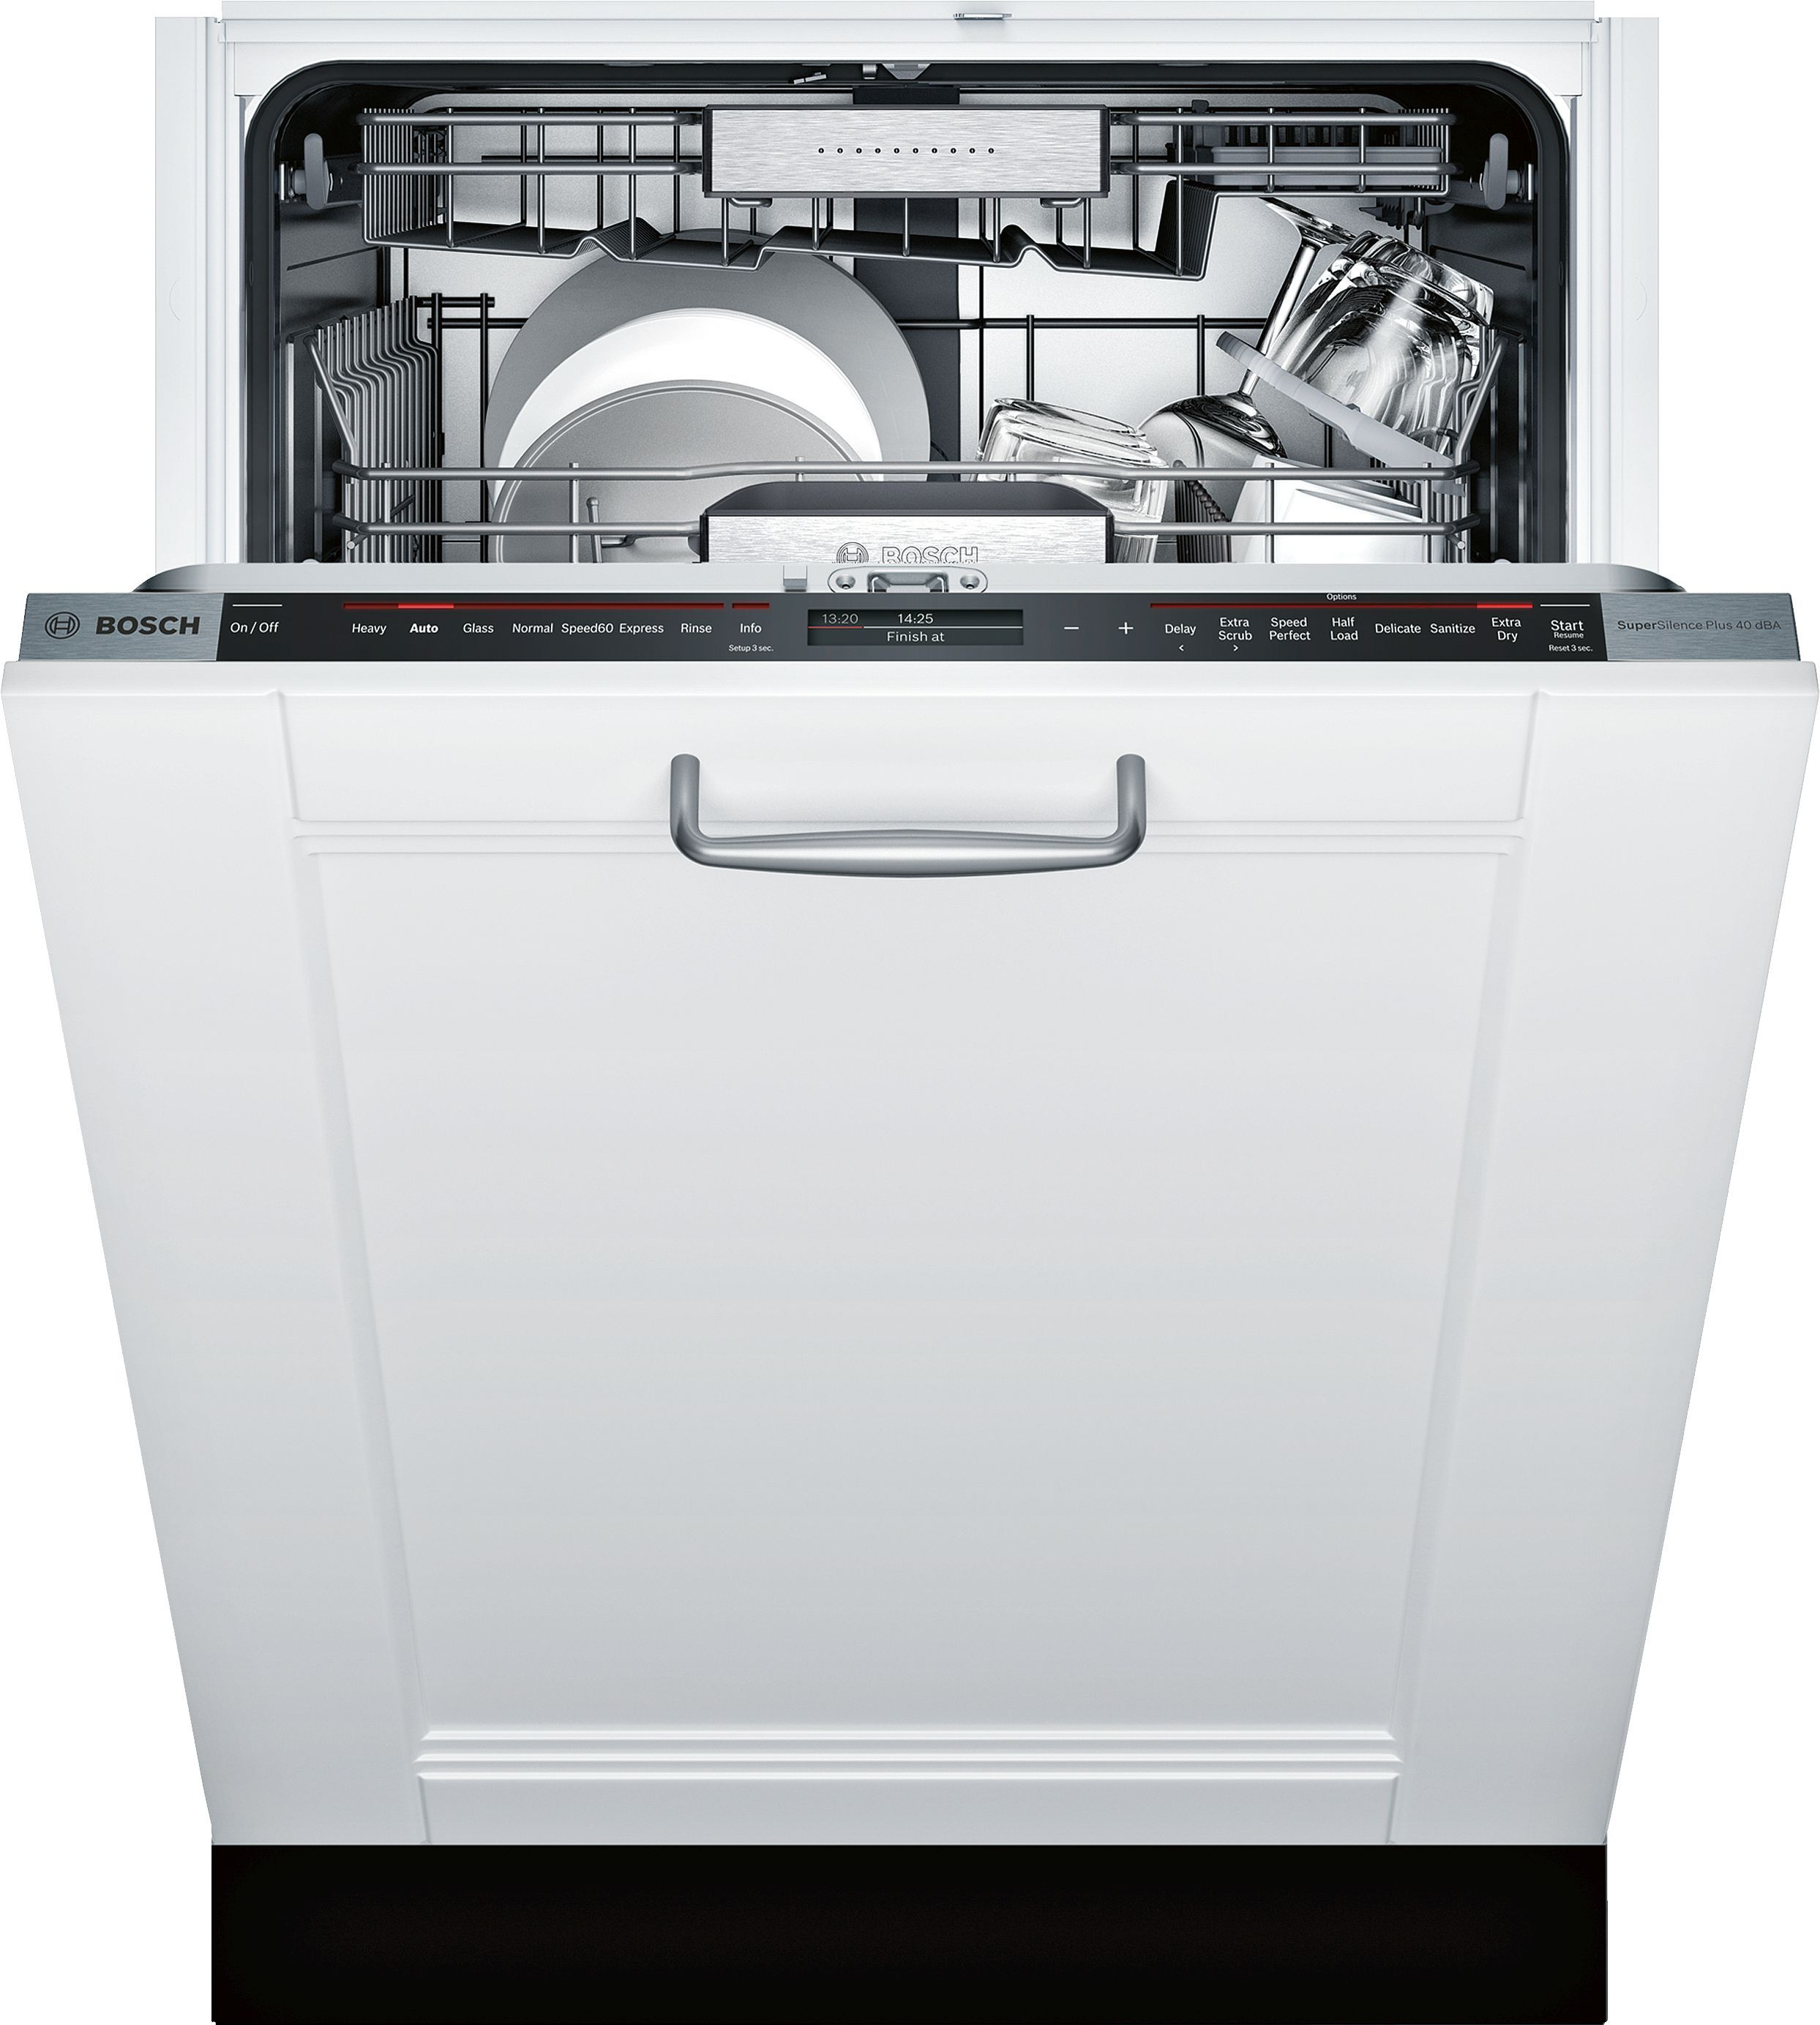 Bosch Shv89pw53n Dishwasher Steel Tub Built In Dishwasher Integrated Dishwasher